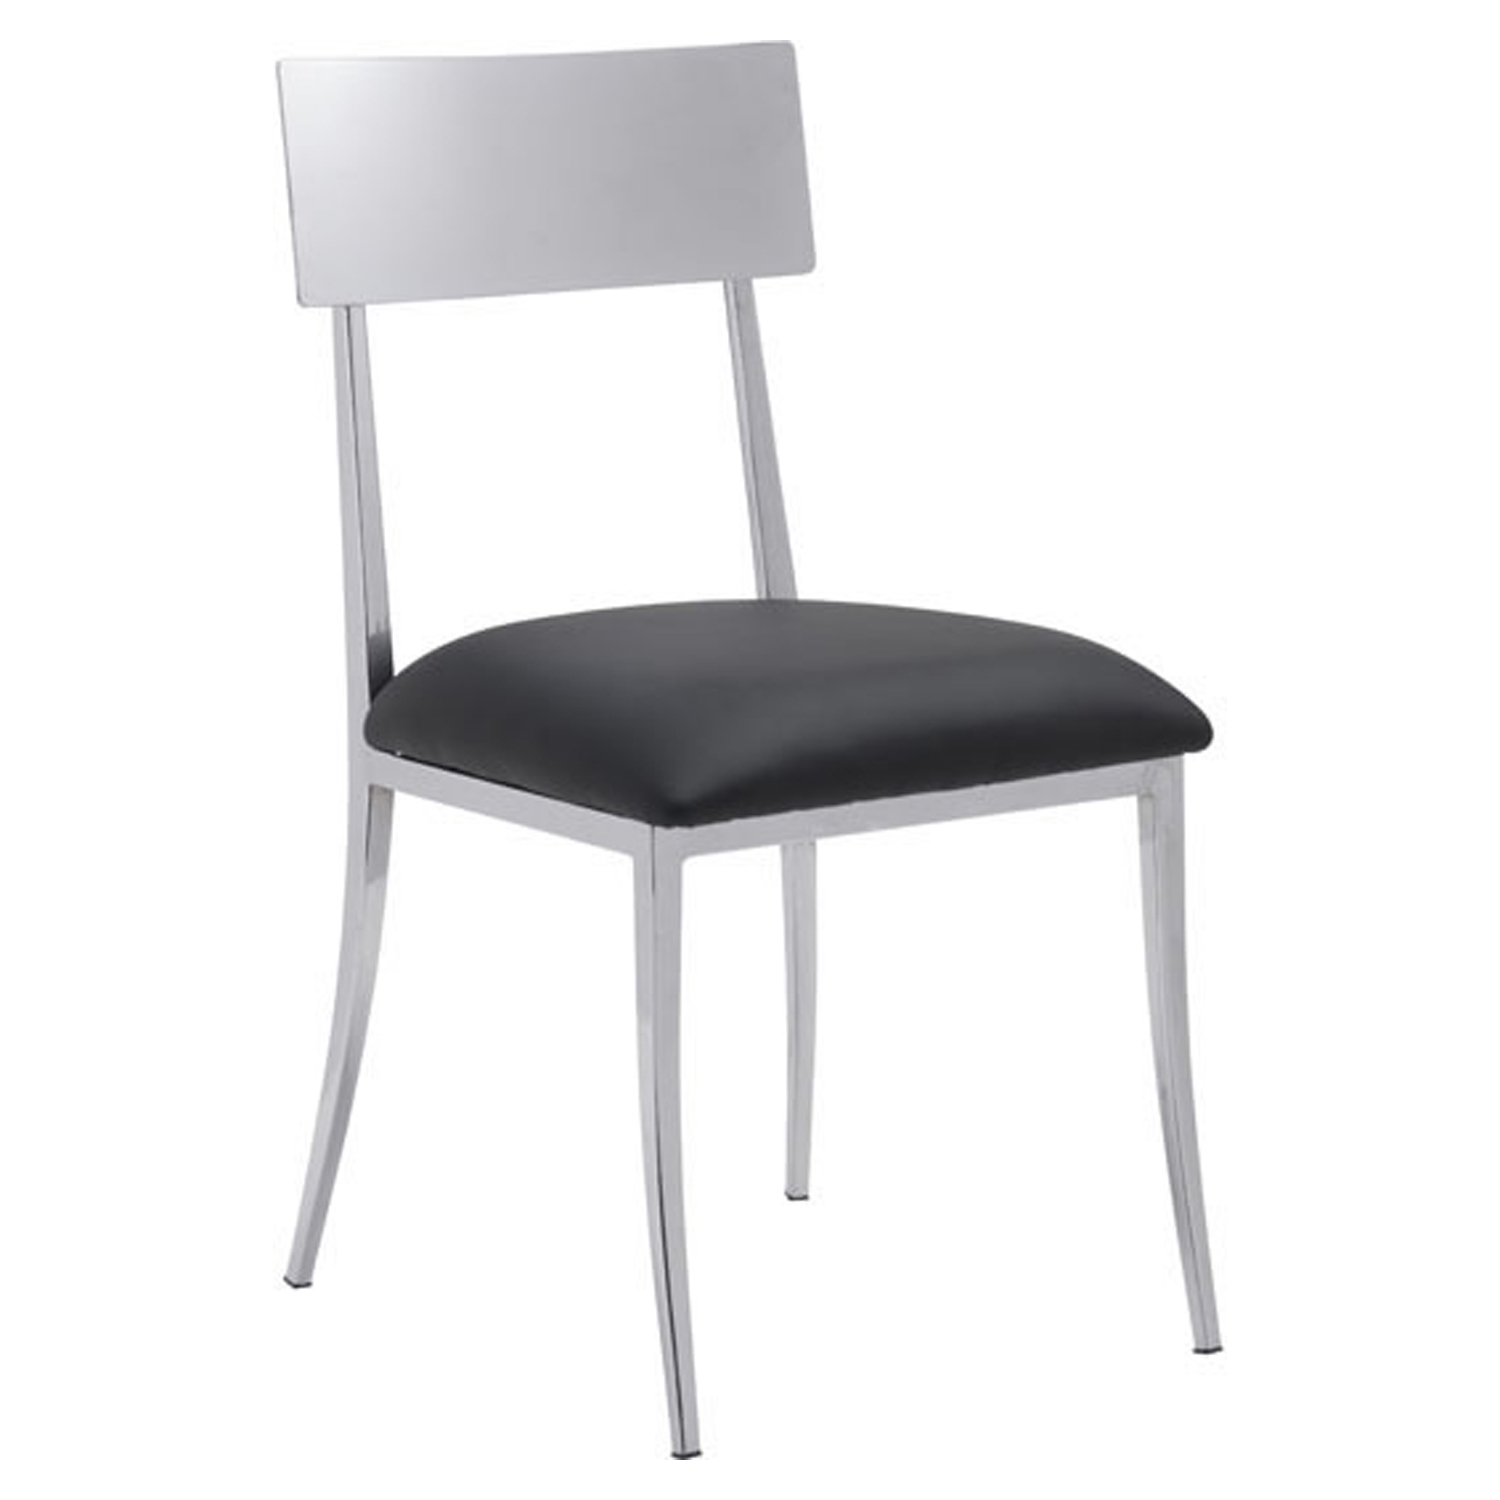 Mach Dining Chair - Black